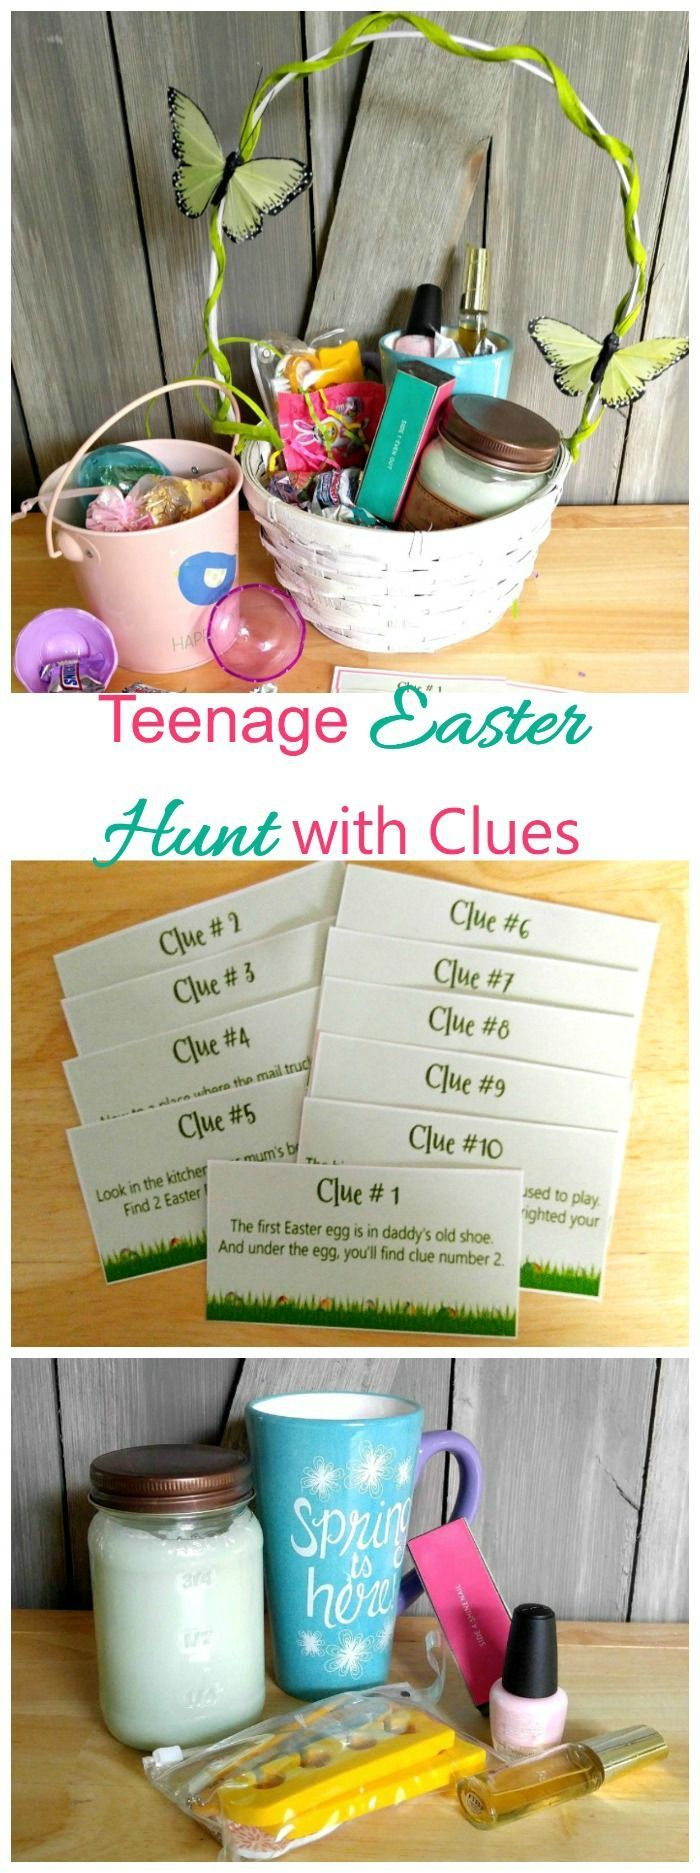 This Easter Egg Hunt with Clues is a lot of fun for teenagers and is a great way to extend the traditional Easter egg hunt when the kids are getting older.. #SpringMoments #ad